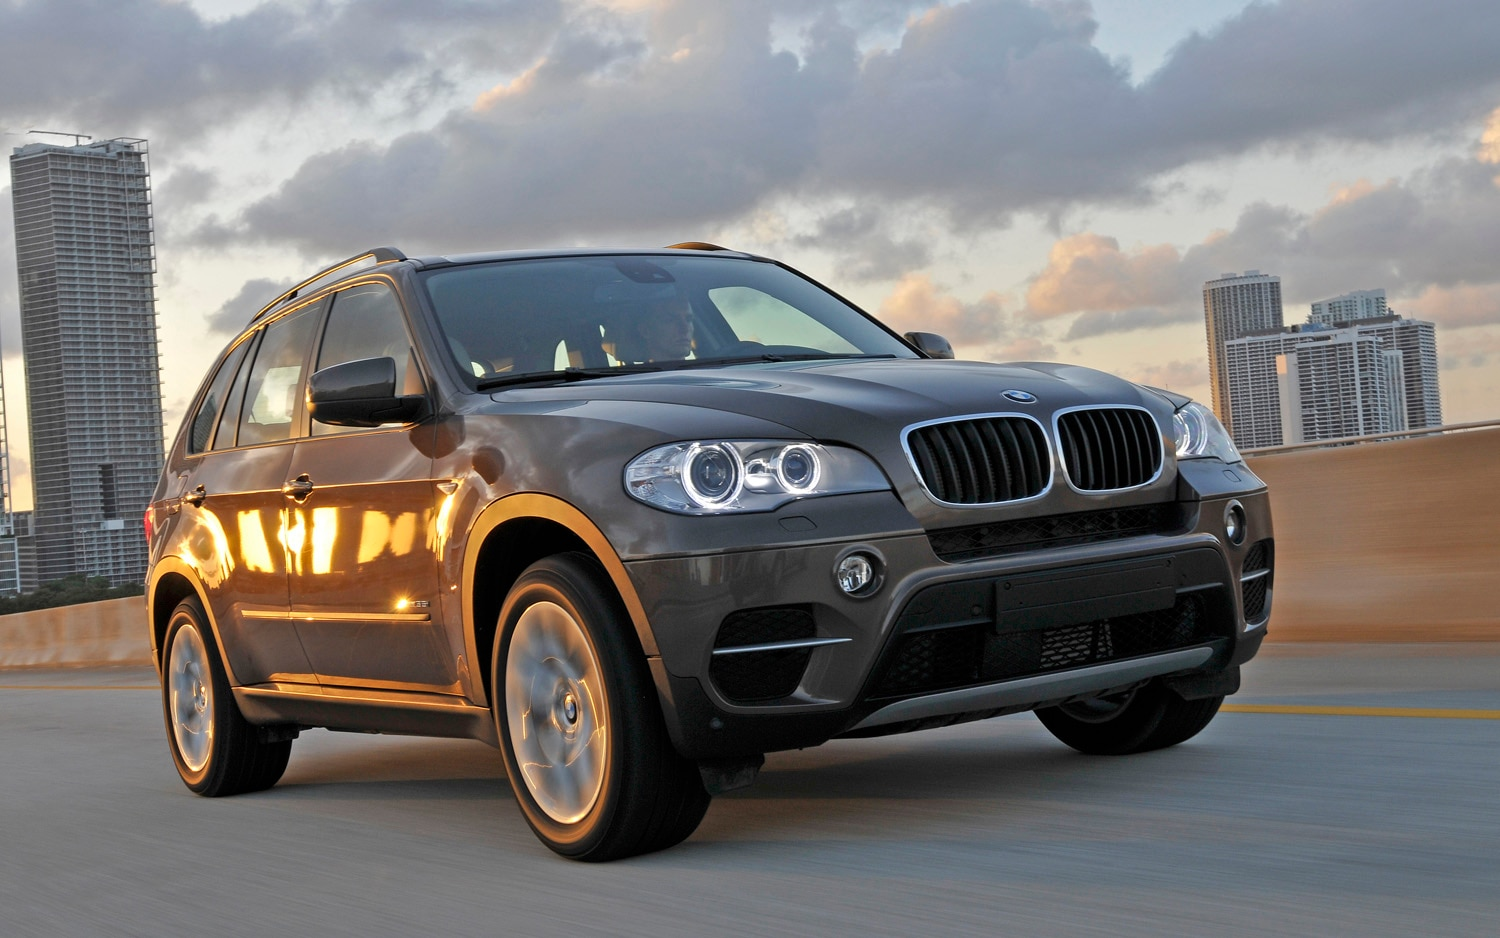 2011 Bmw X5 XDrive35i Front View1